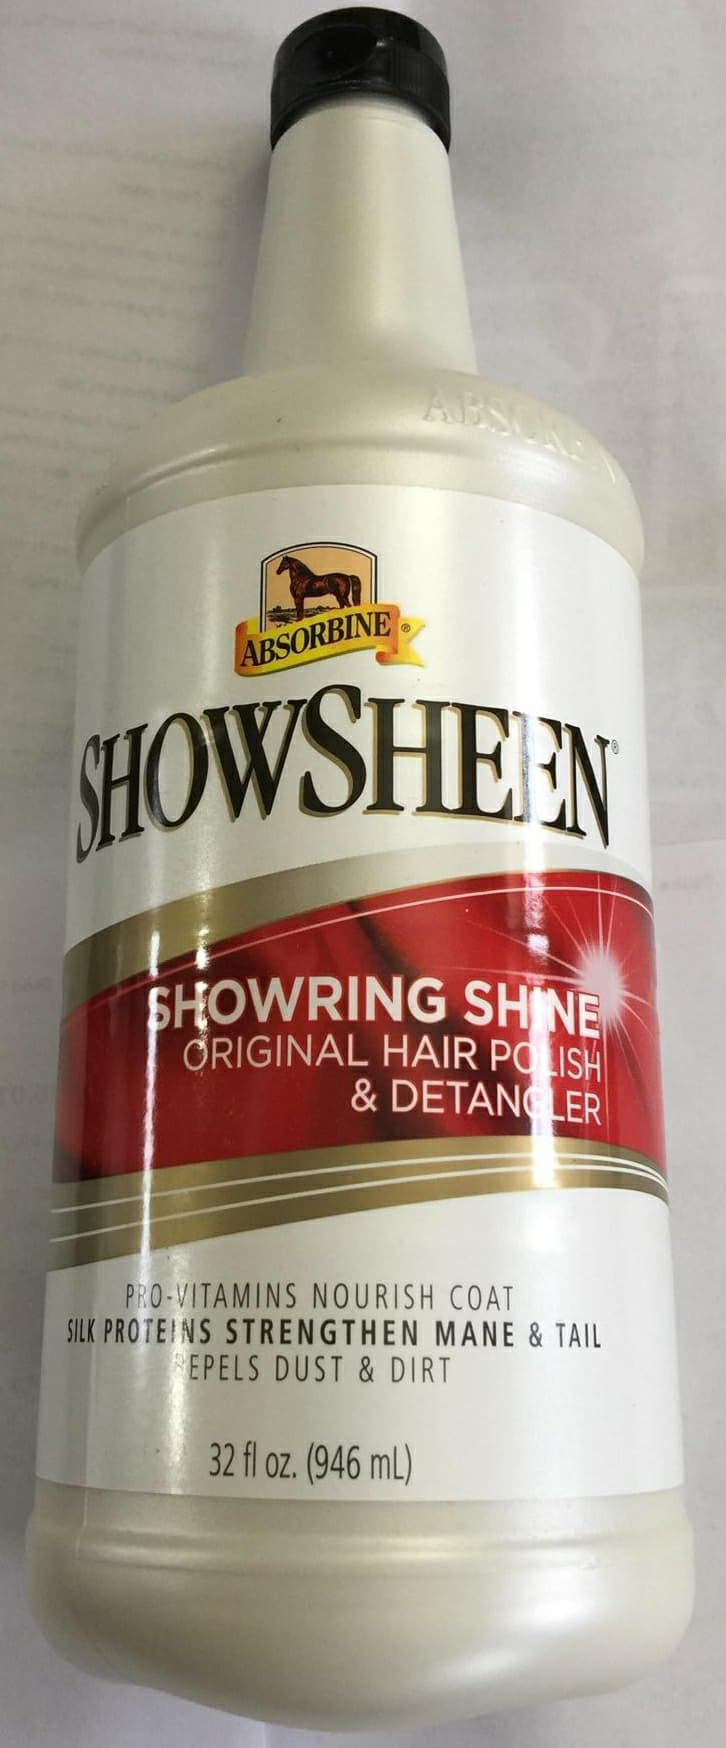 Showsheen Hair Polish & Detangler 32oz Refill Bottle